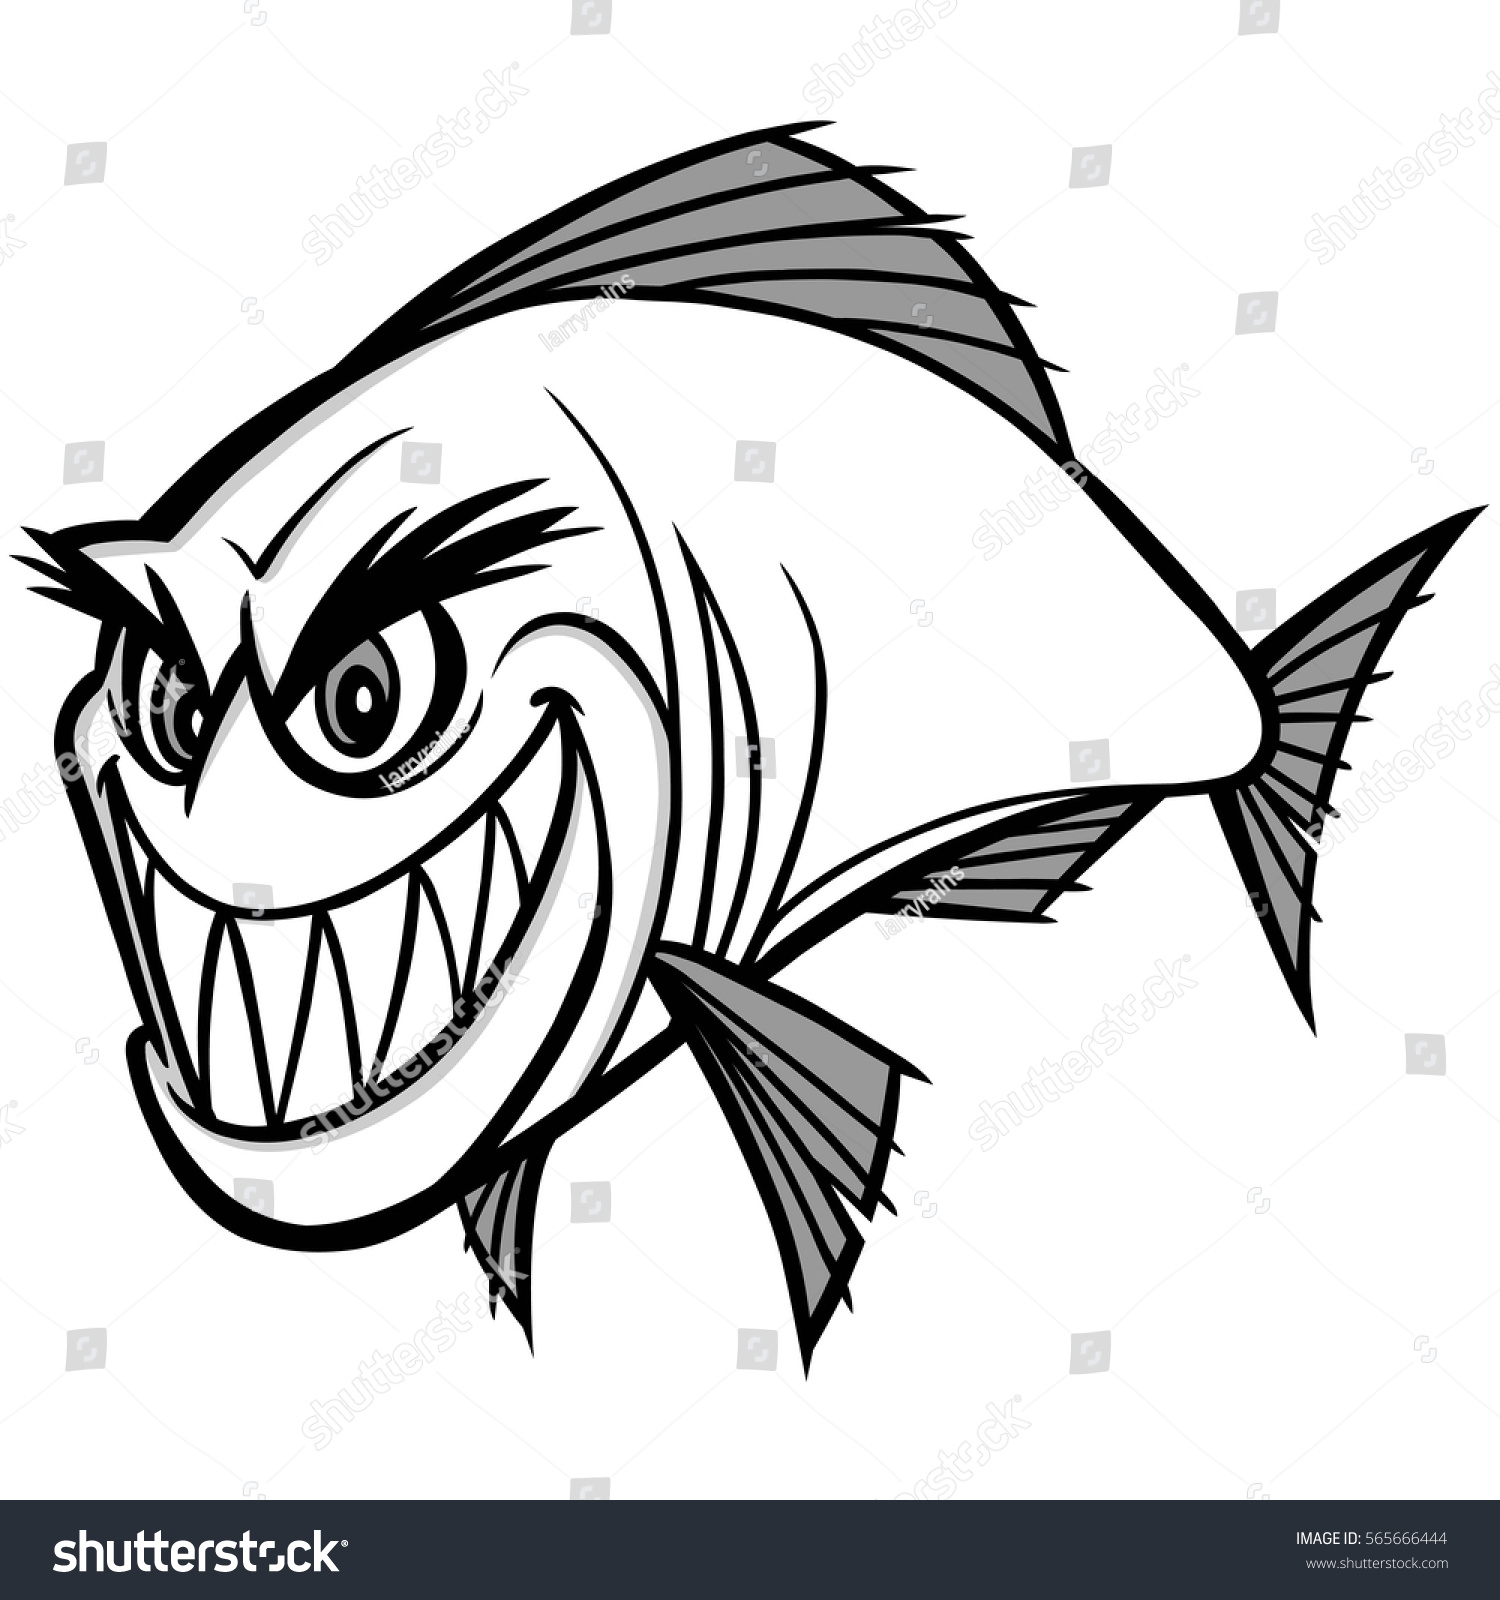 Piranha Illustration Vector de stock565666444: Shutterstock